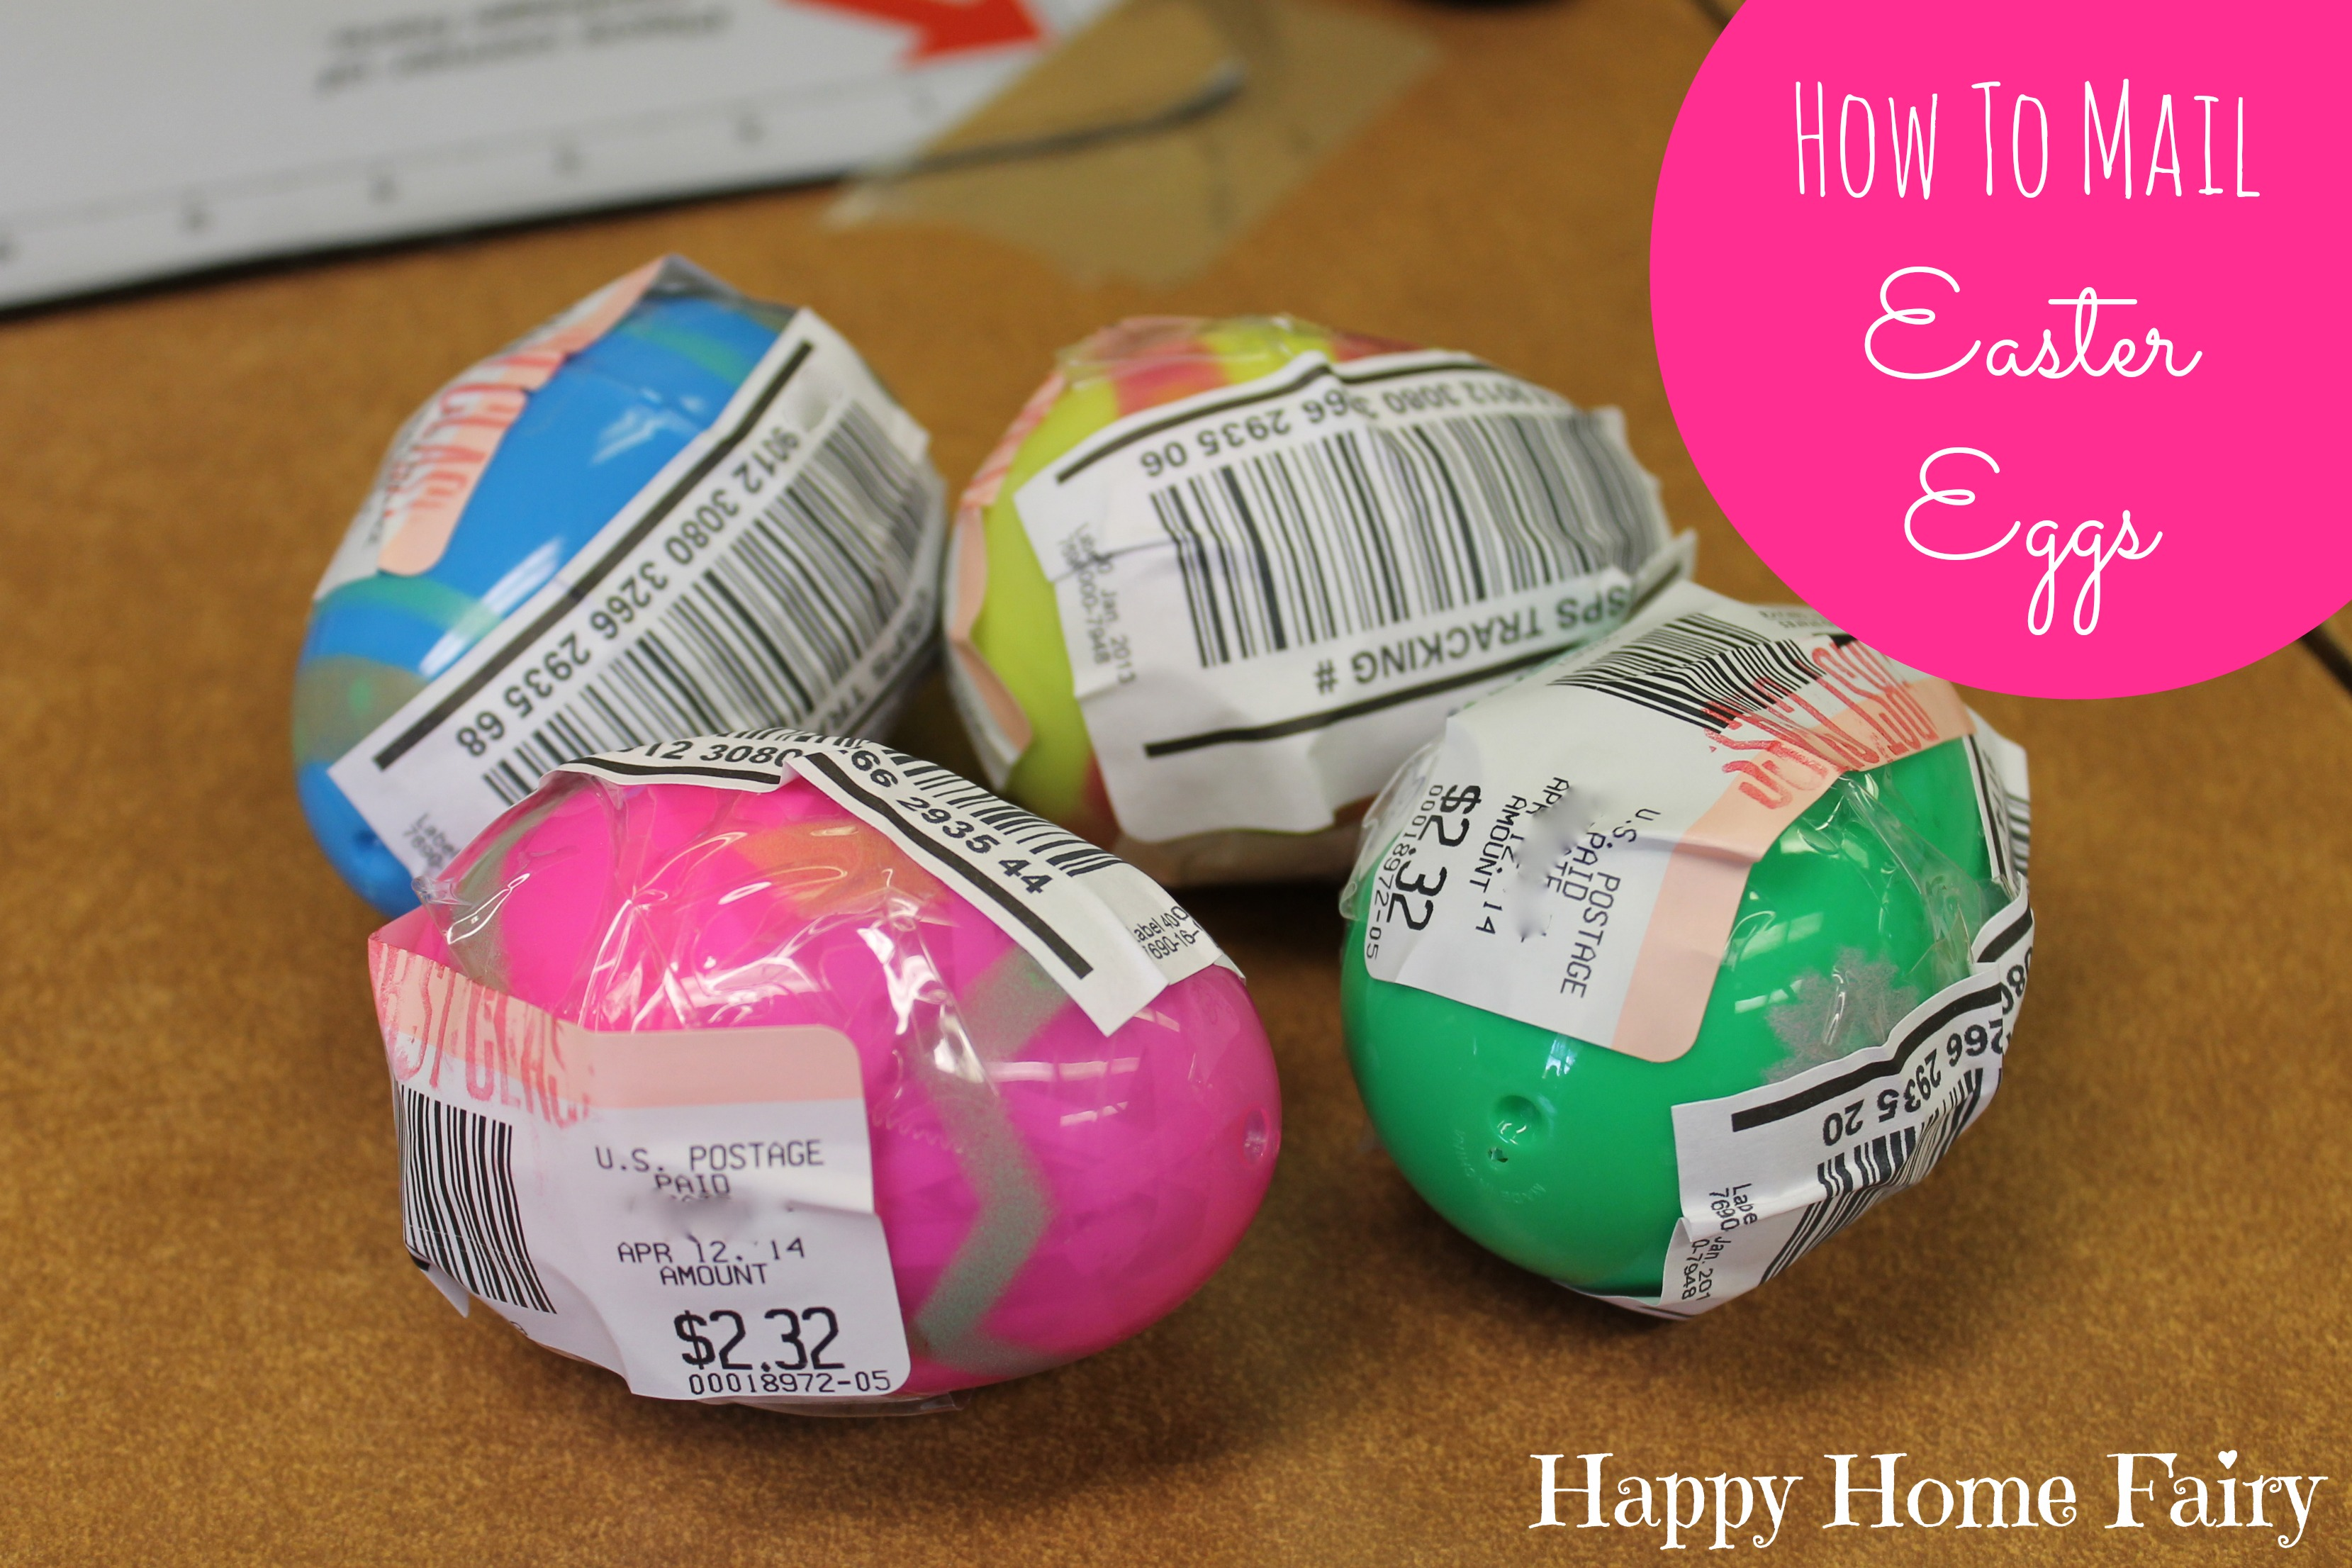 How To Mail Easter Eggs - Happy Home Fairy